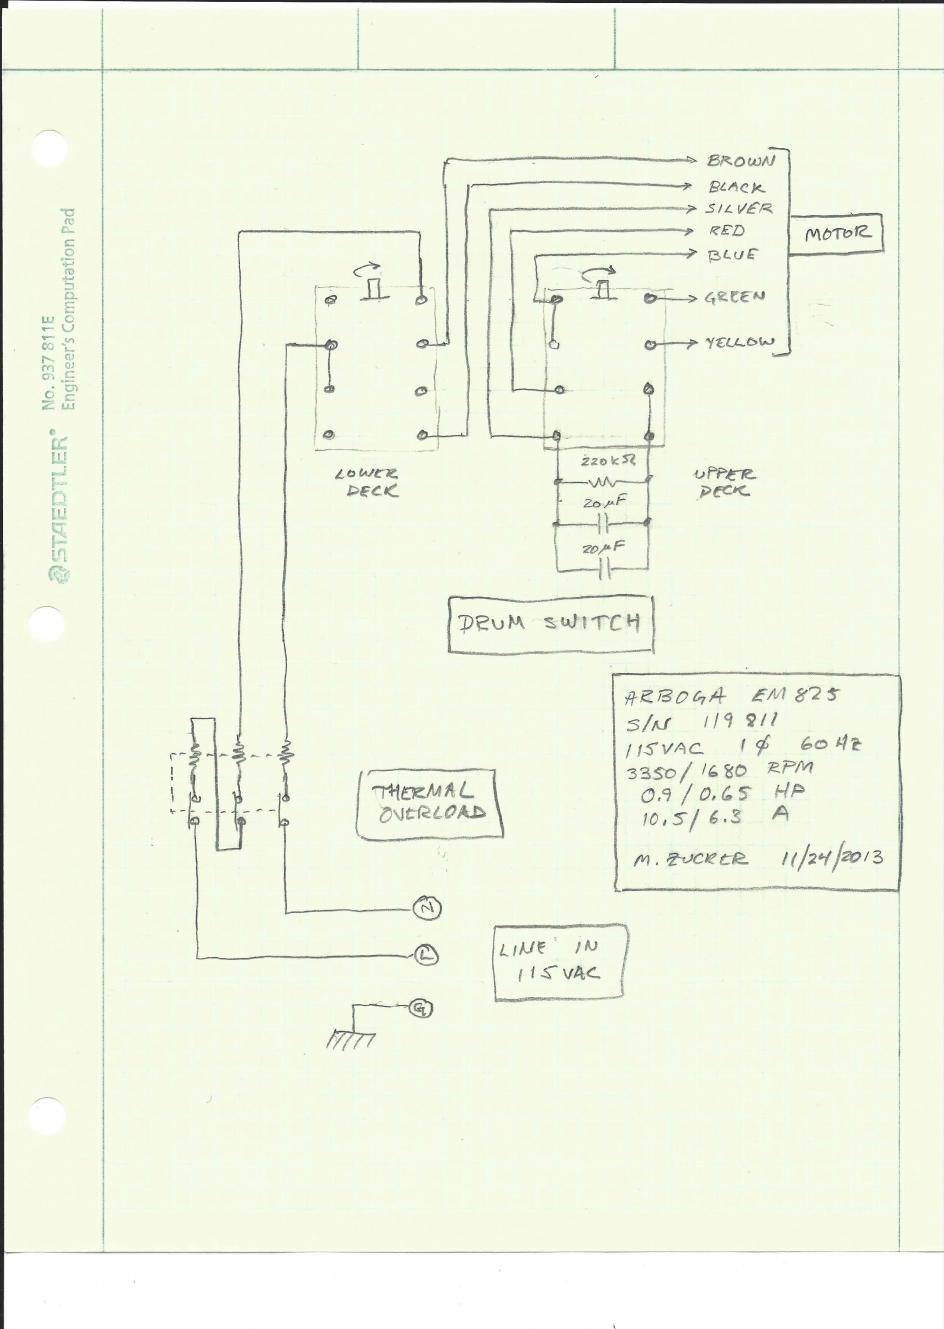 Looking For Arboga E825 1ph 220 Wiring Diagram Em825 Sn119811 115v